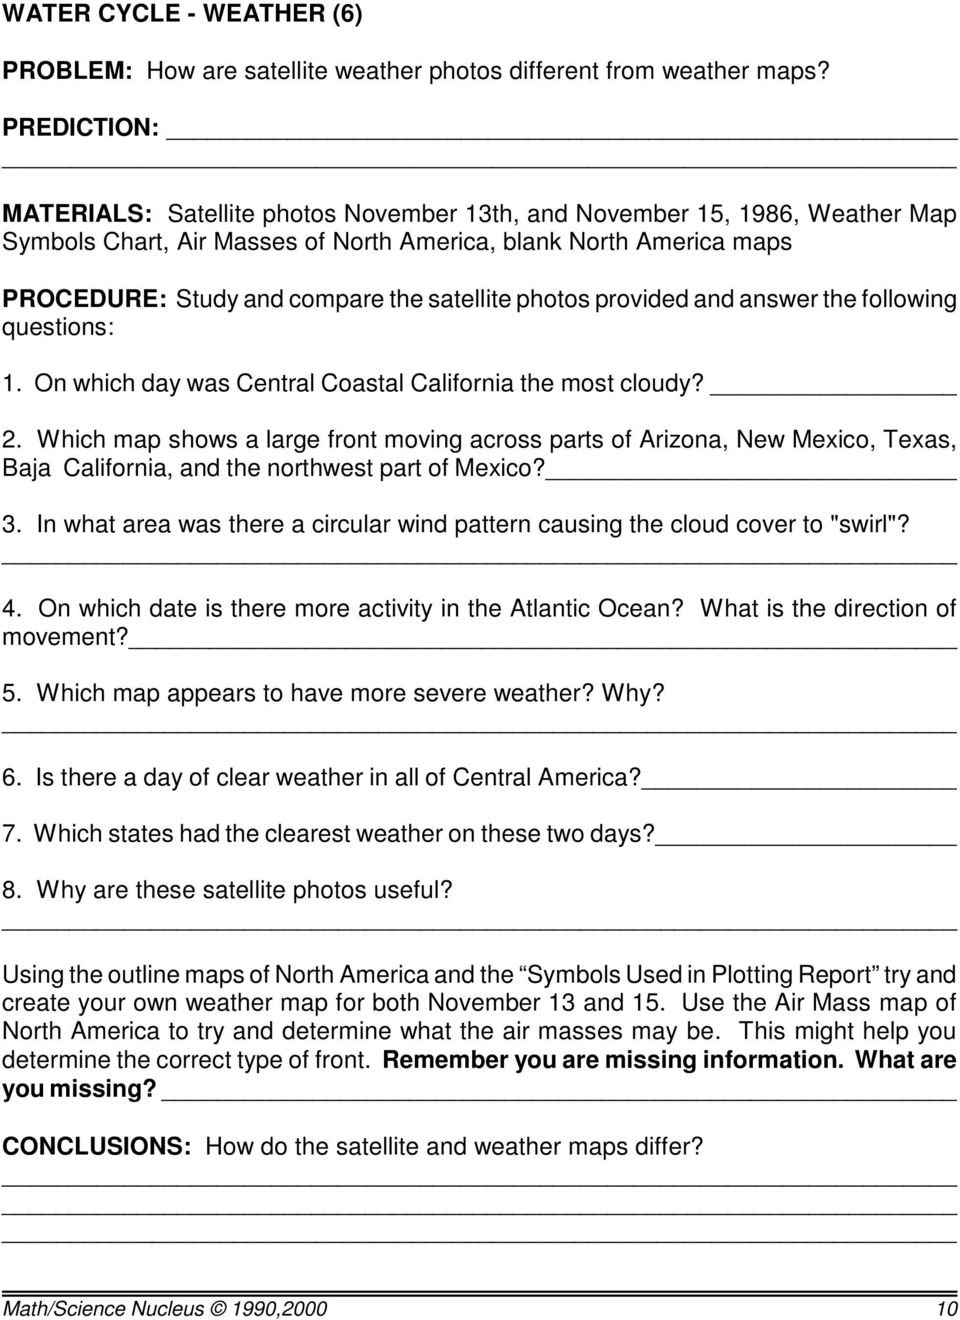 satellite photos provided and answer the following questions: 1. On which day was Central Coastal California the most cloudy? 2.